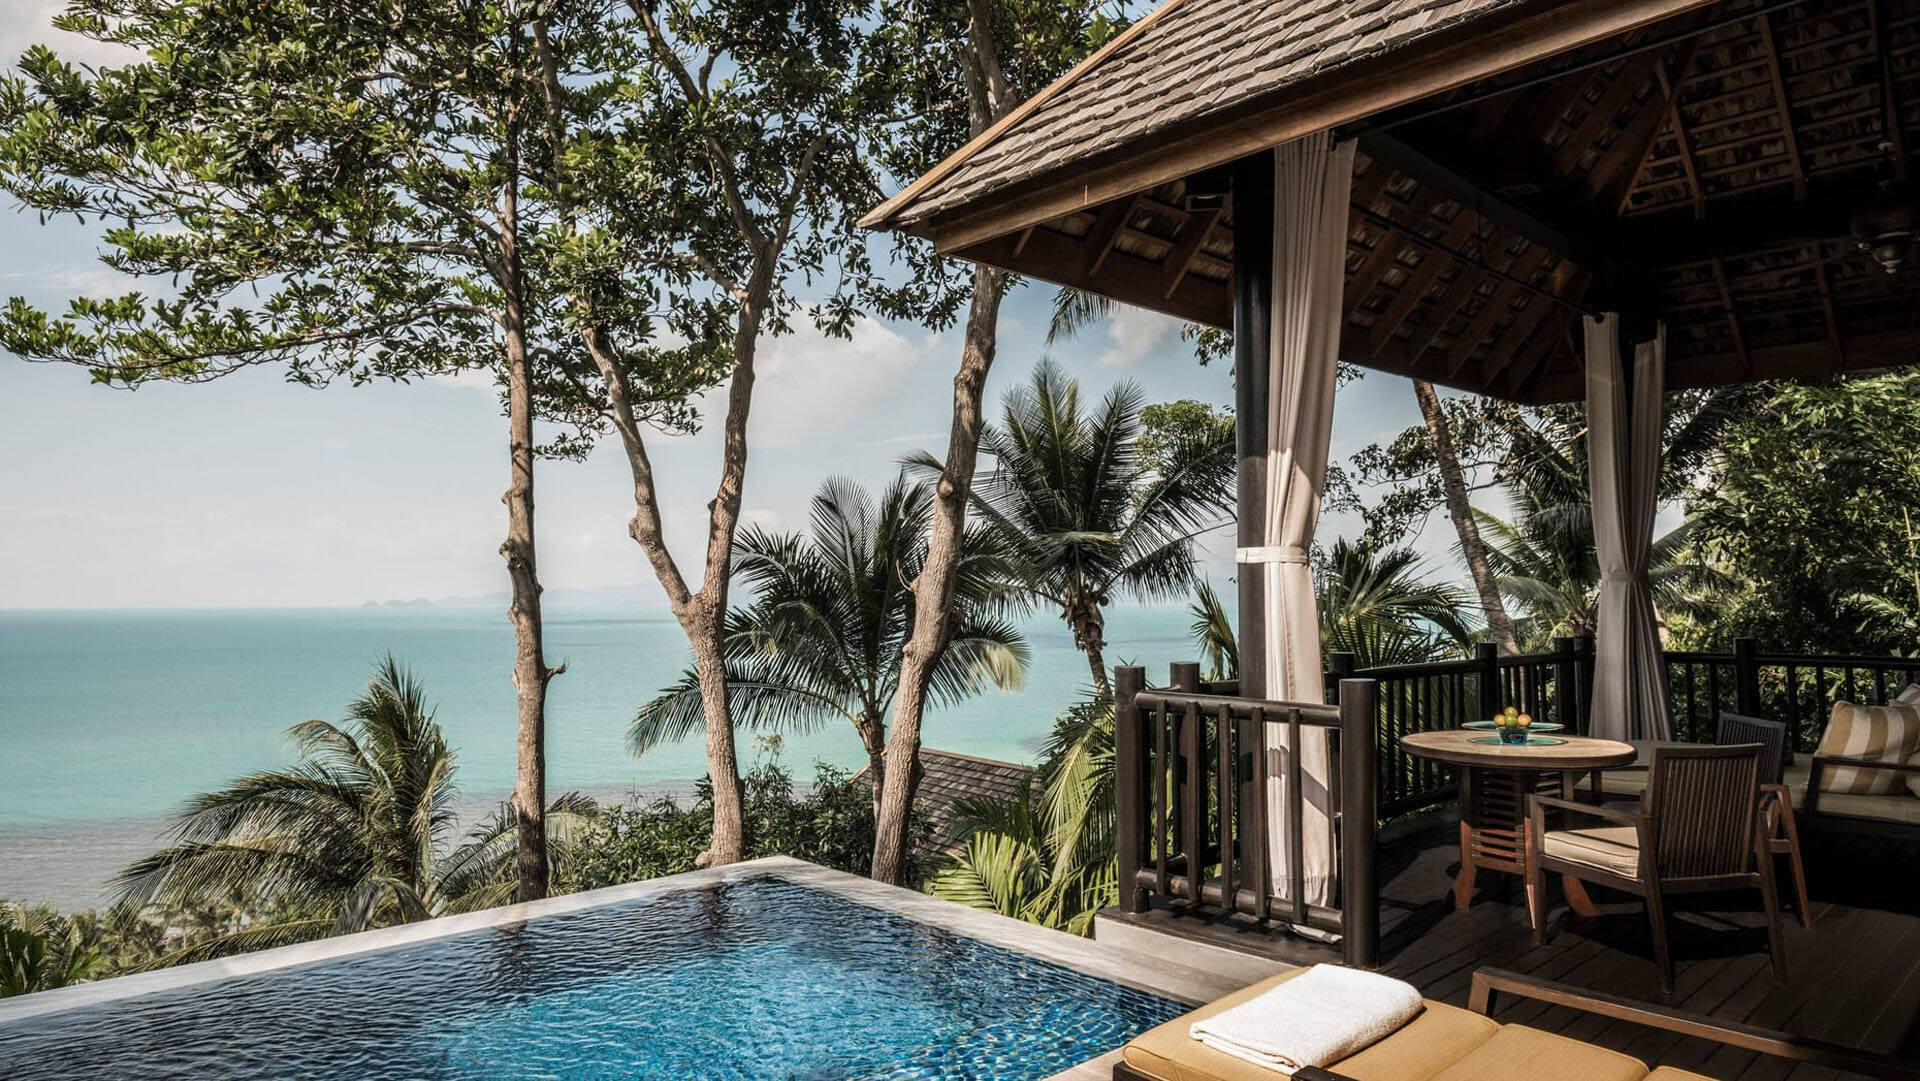 Four Seasons Koh Samui Piscine Privee